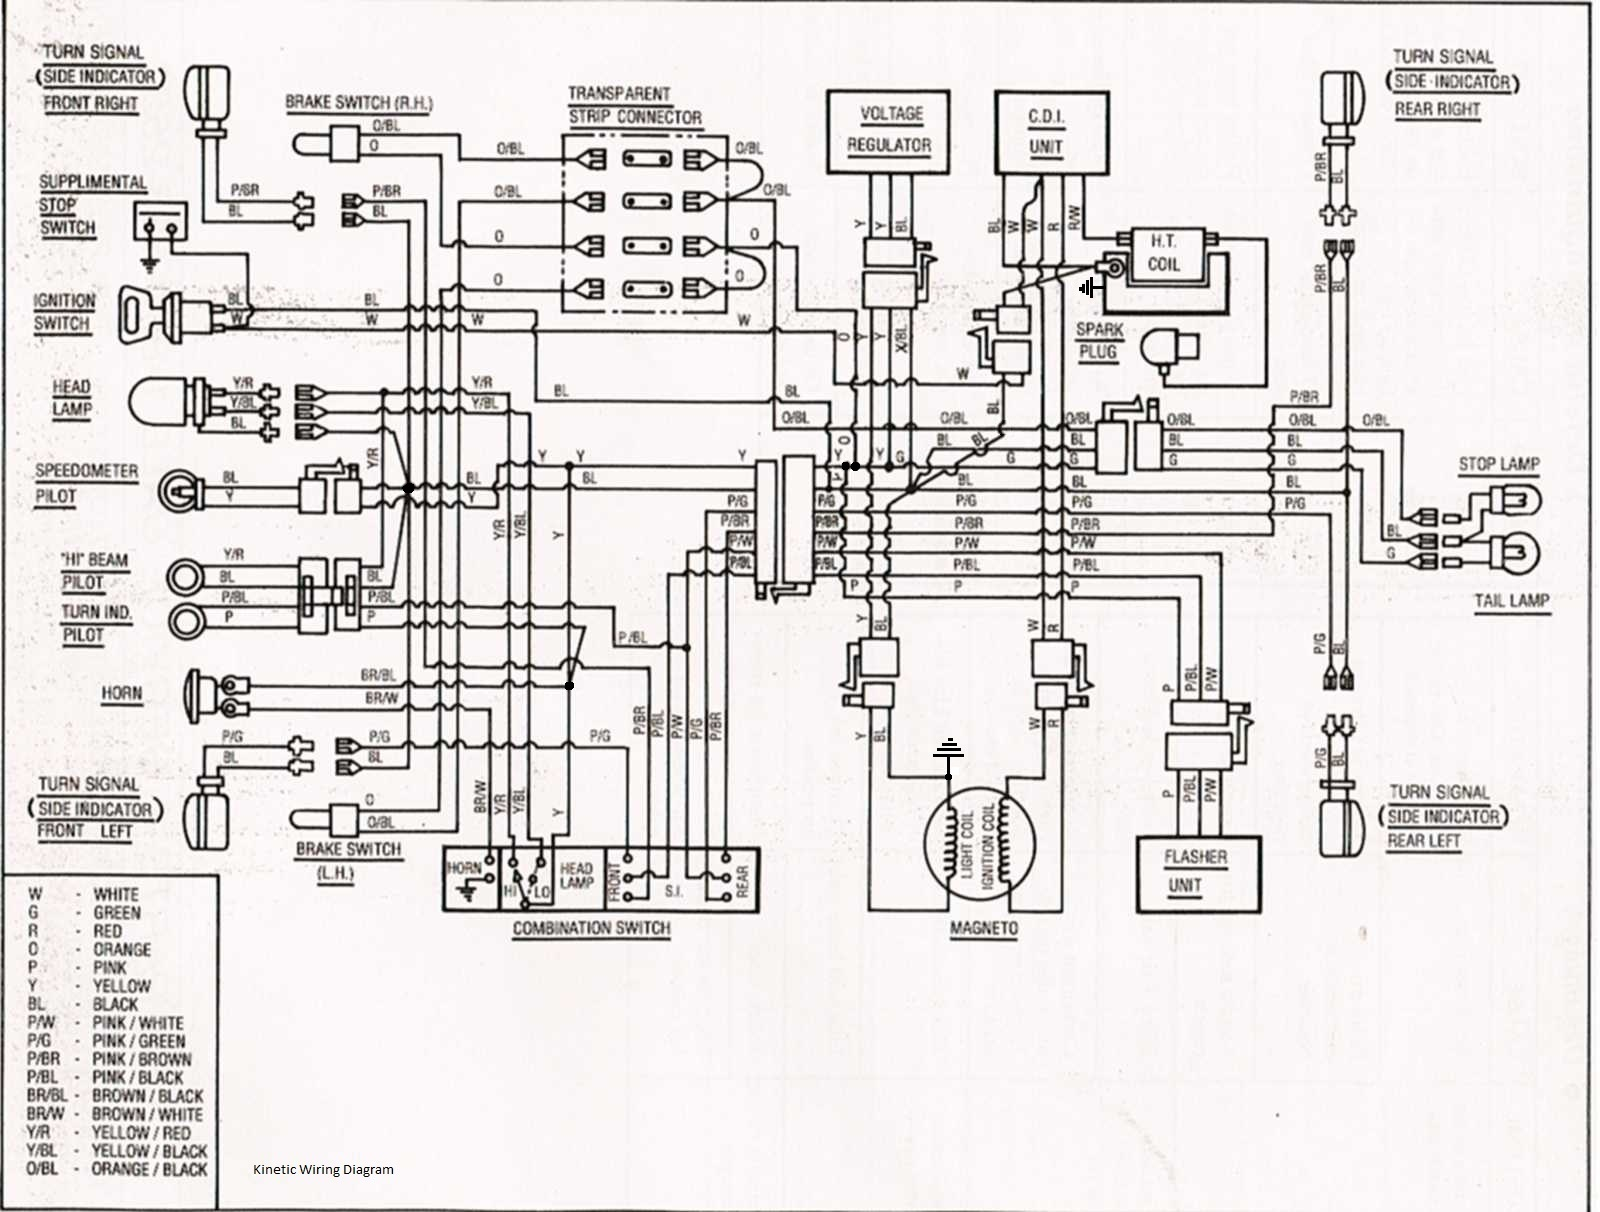 Kinetic Wiring Diagram